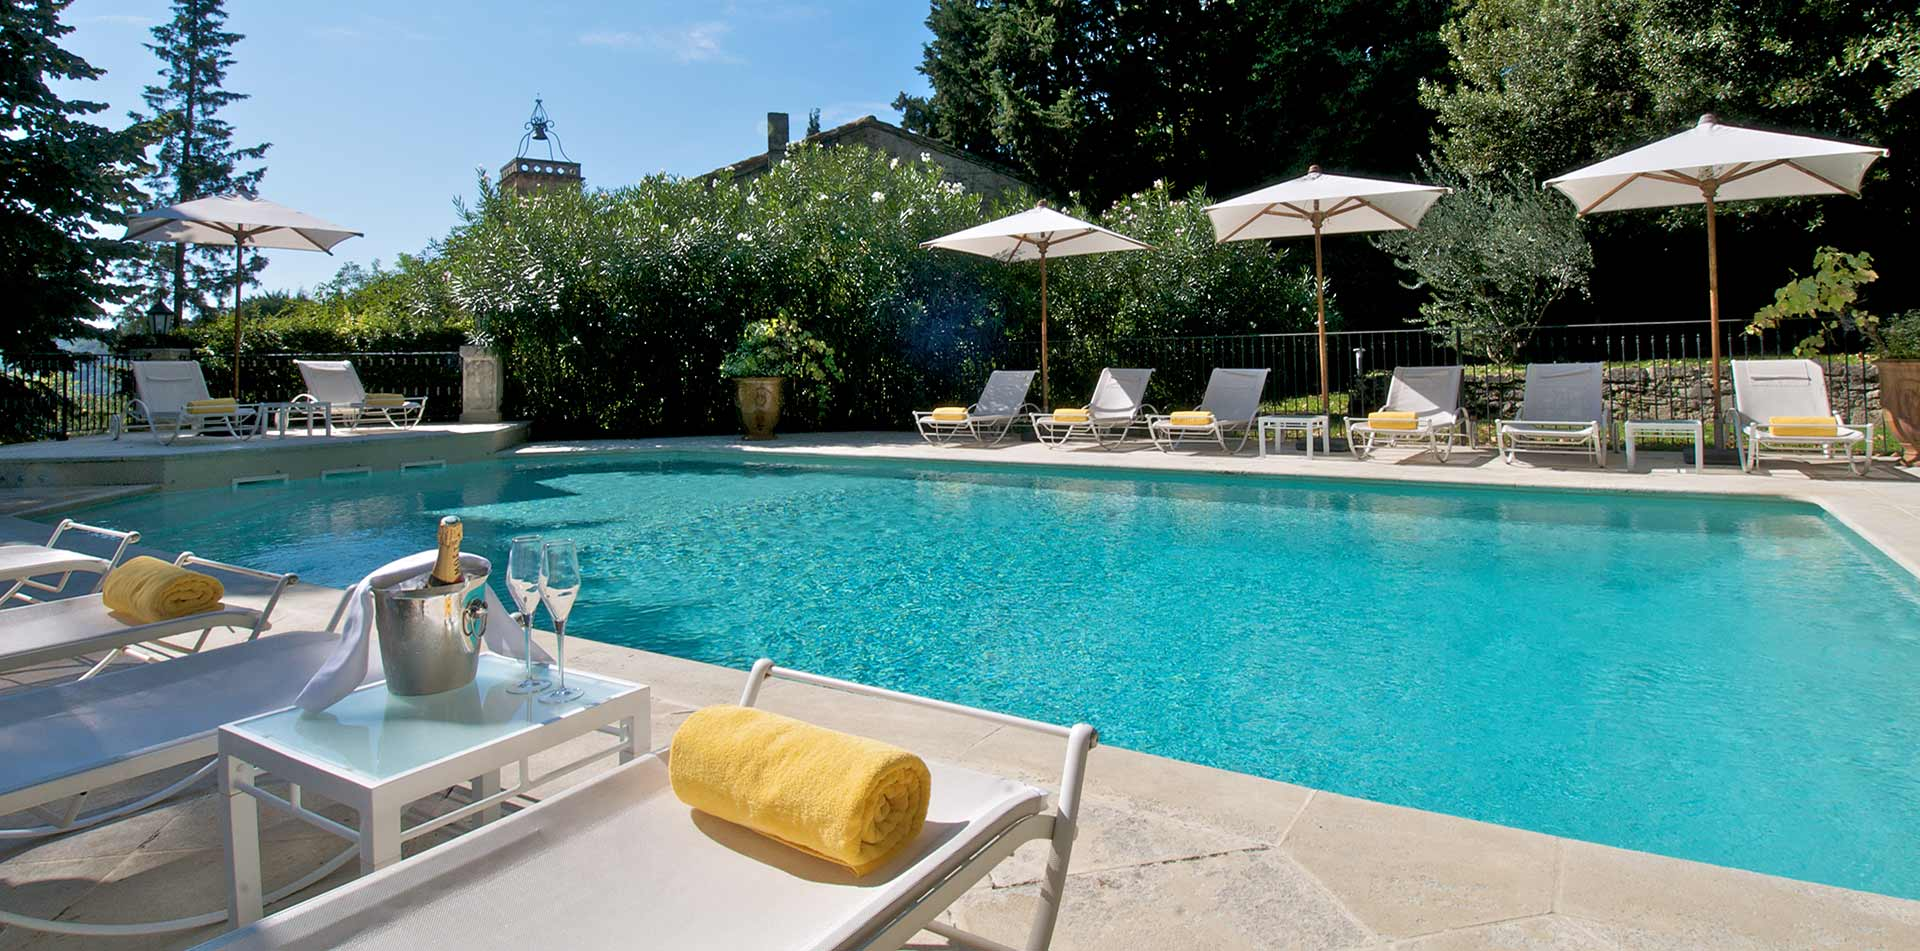 Europe France Provence Chateau de Varenne hotel outdoor pool lounge - luxury vacation destinations